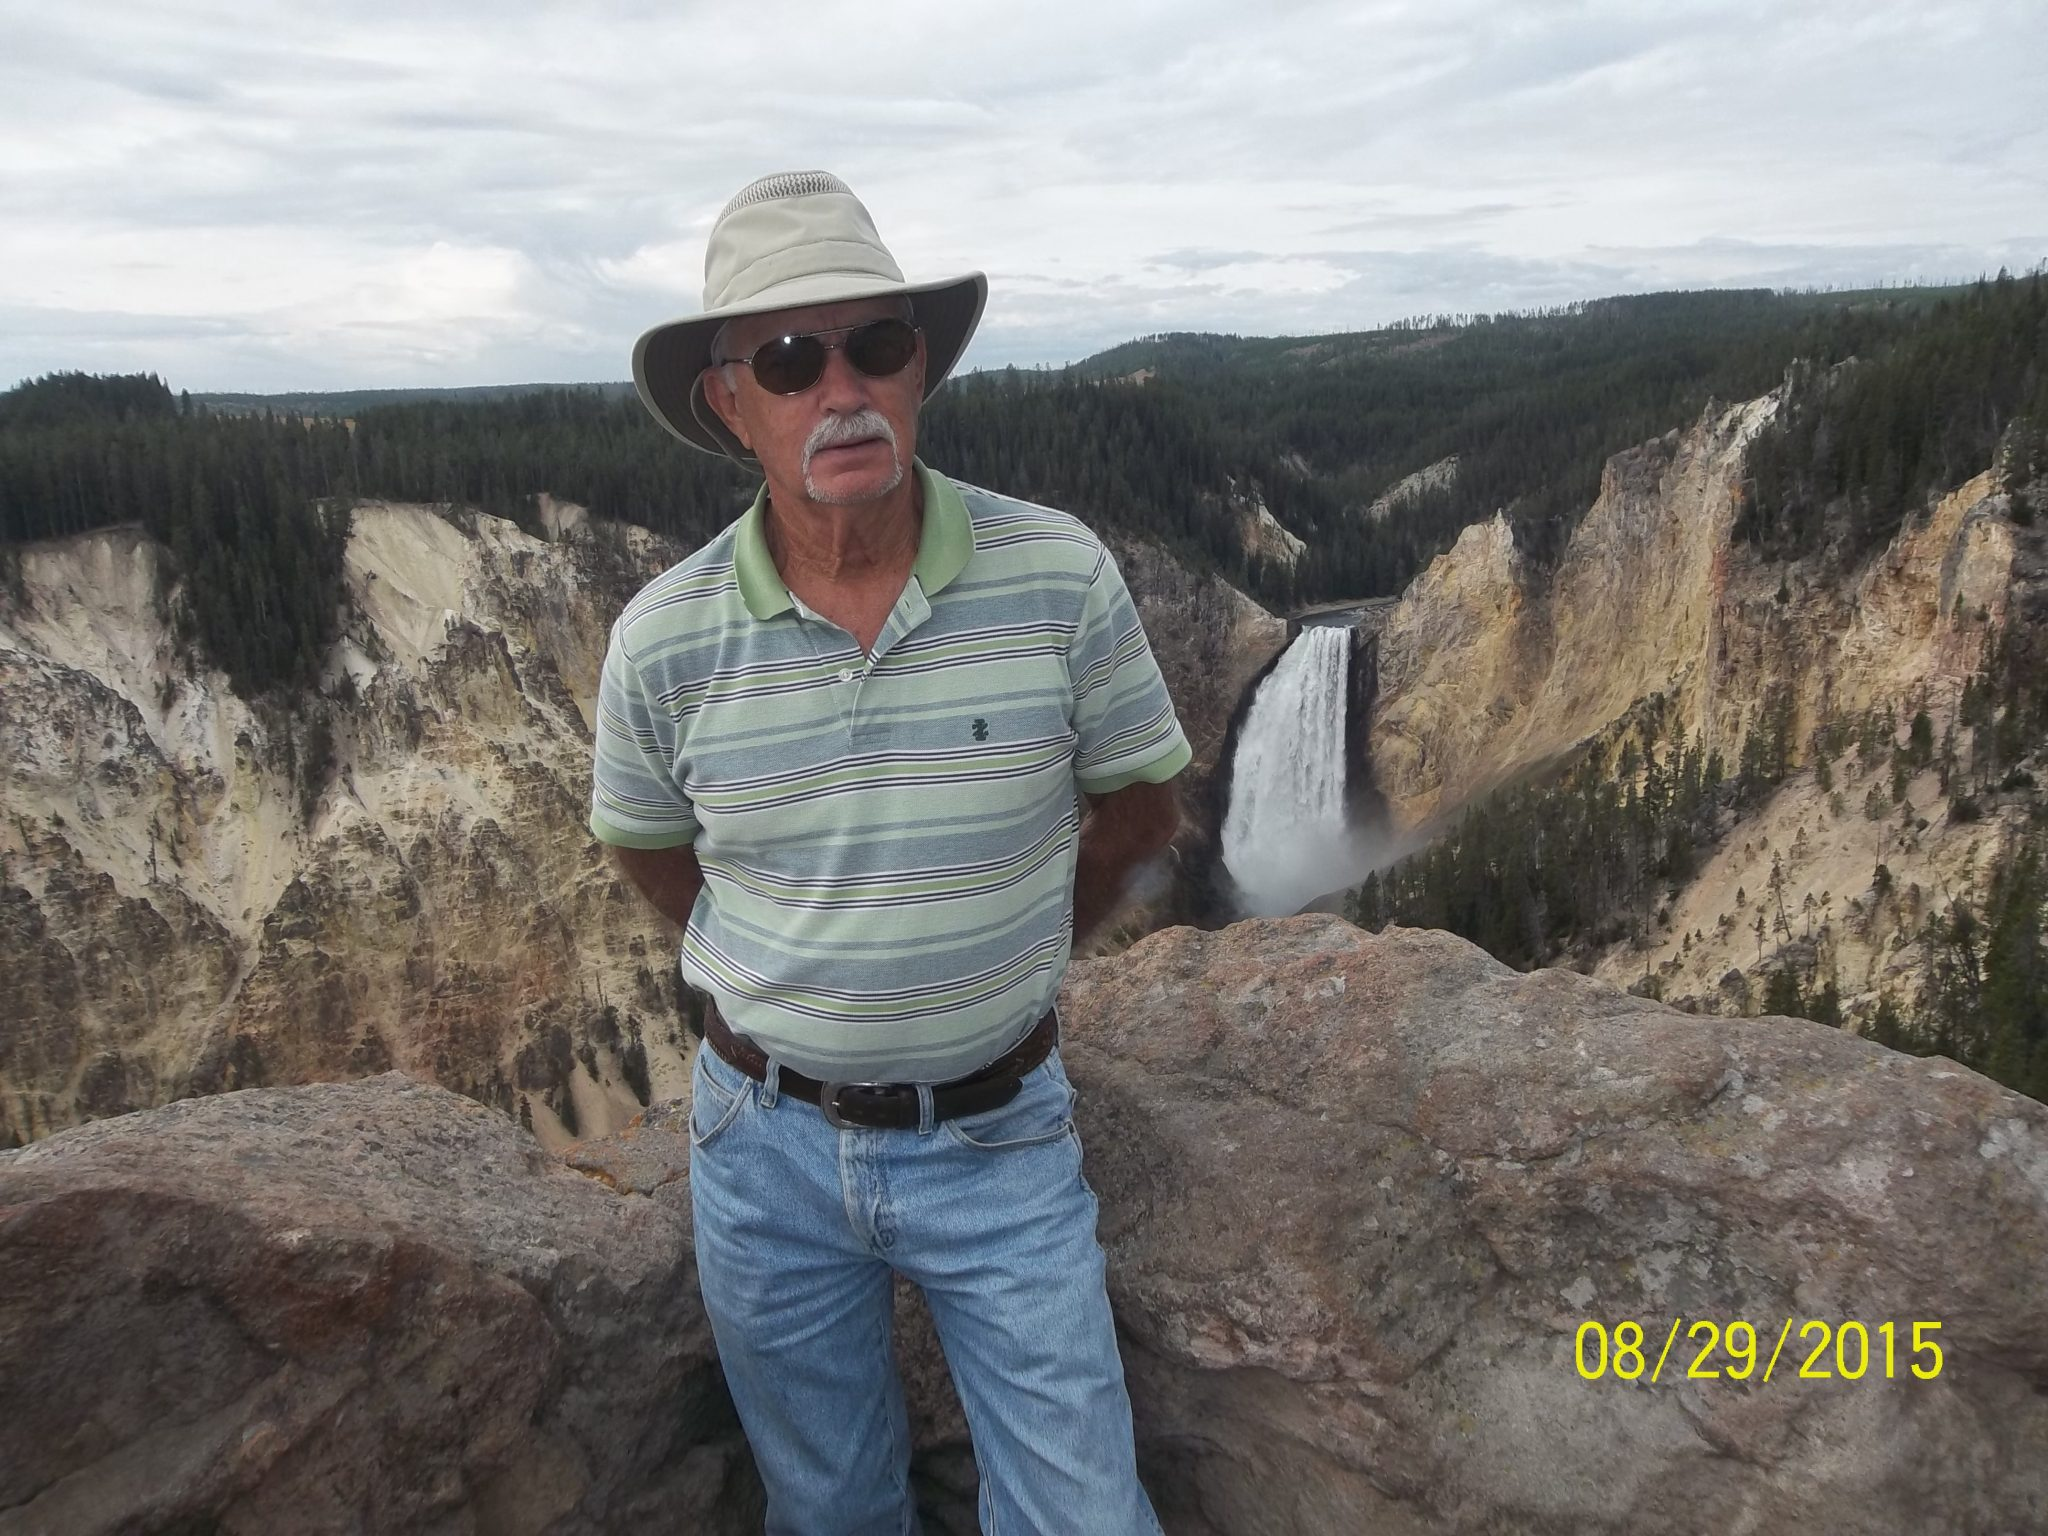 Grand canyon of the Yellowstone. Another great trip hiking the National Parks.